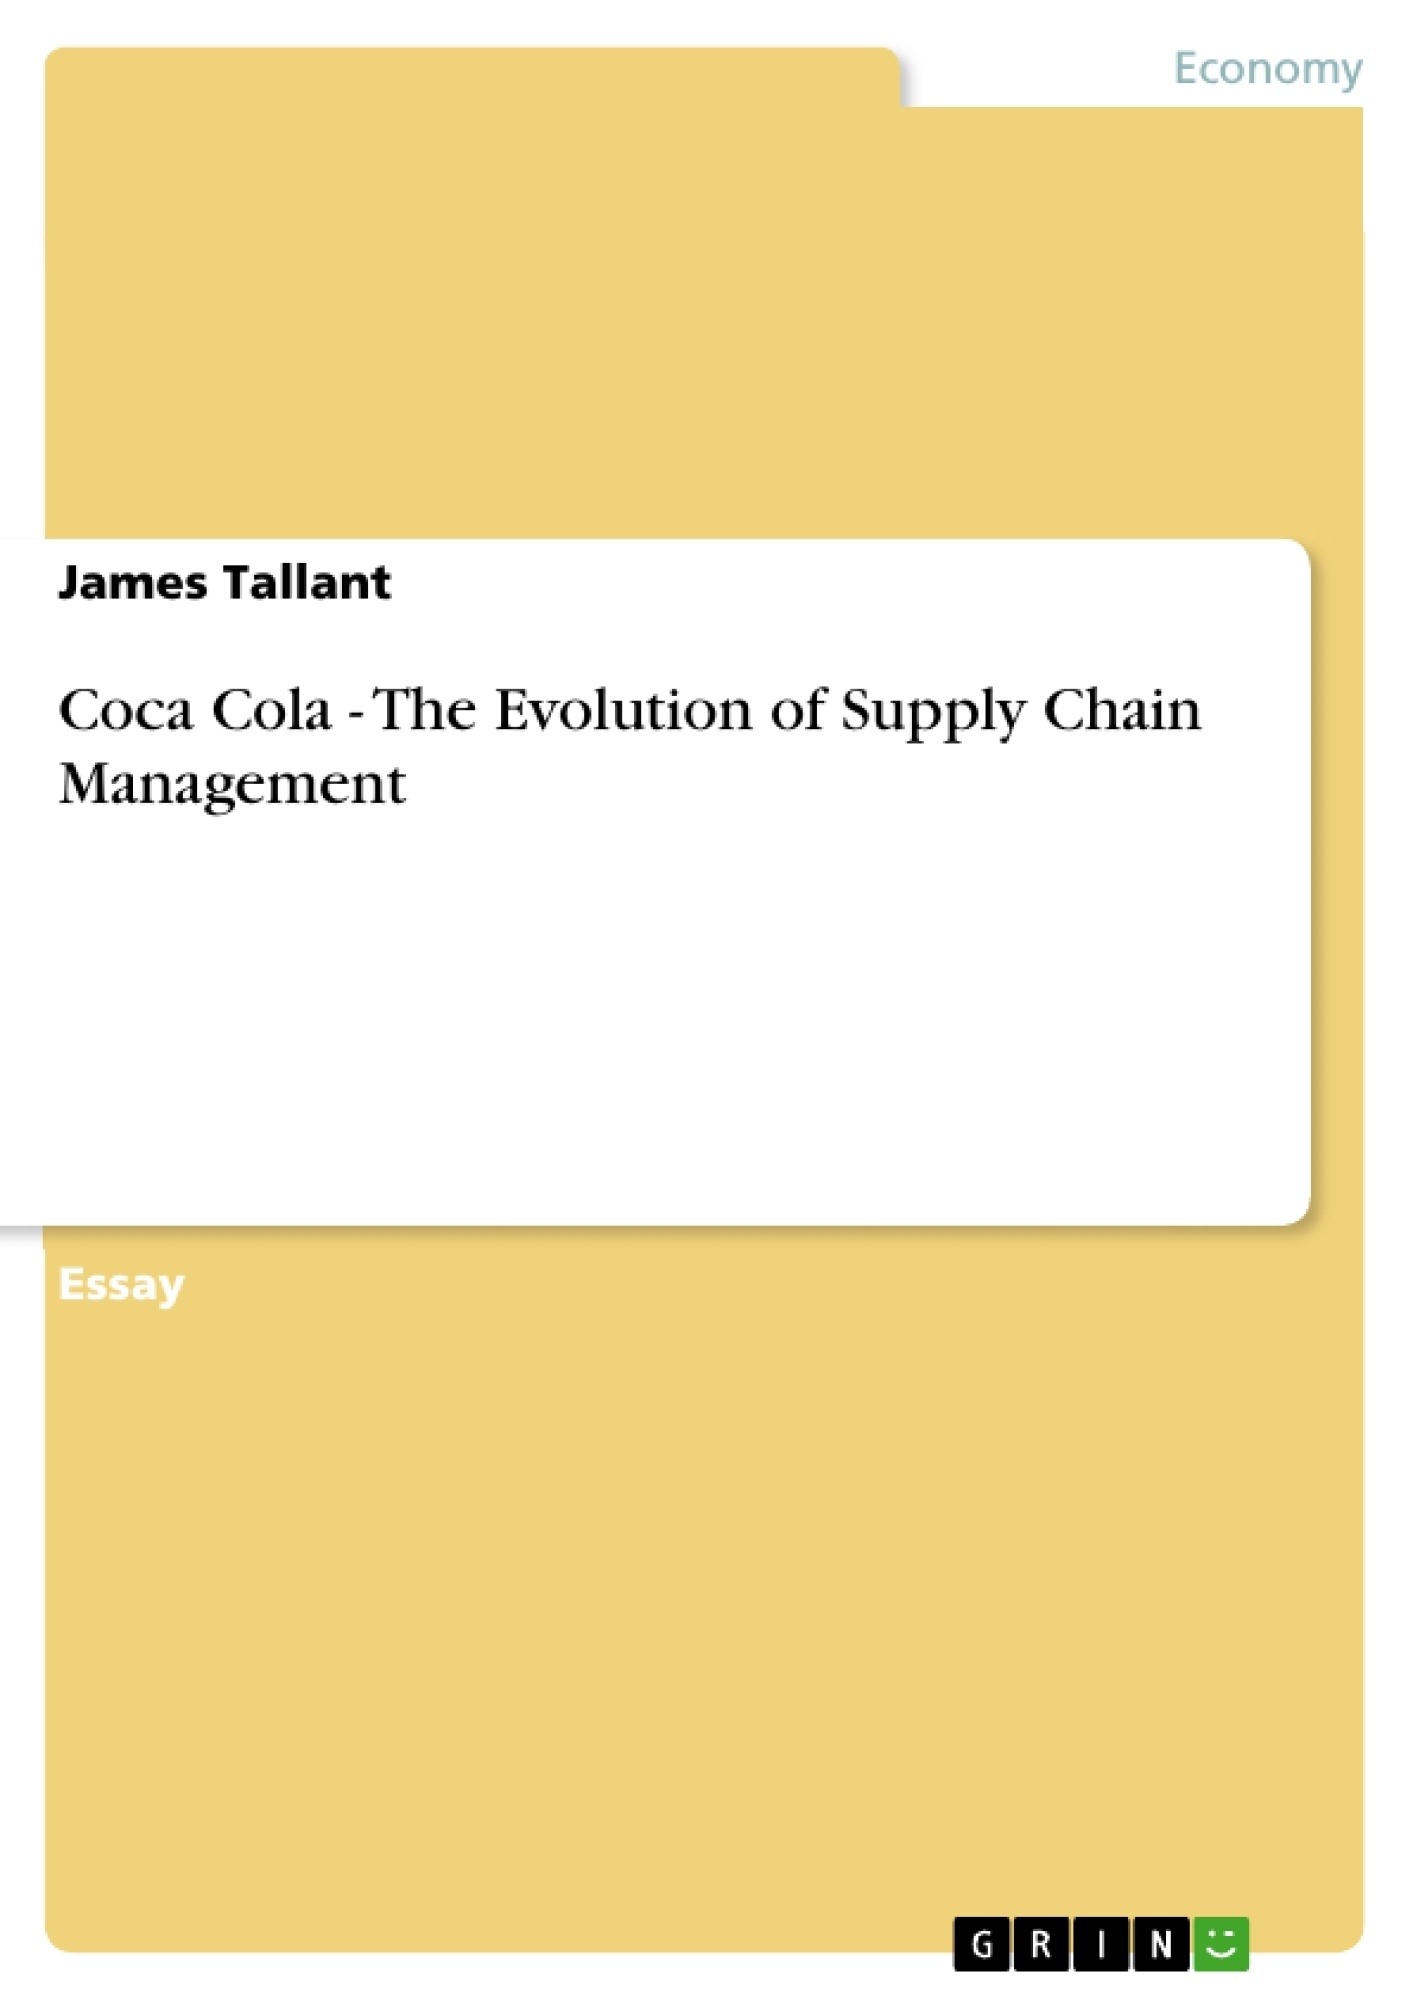 Title: Coca Cola - The Evolution of Supply Chain Management